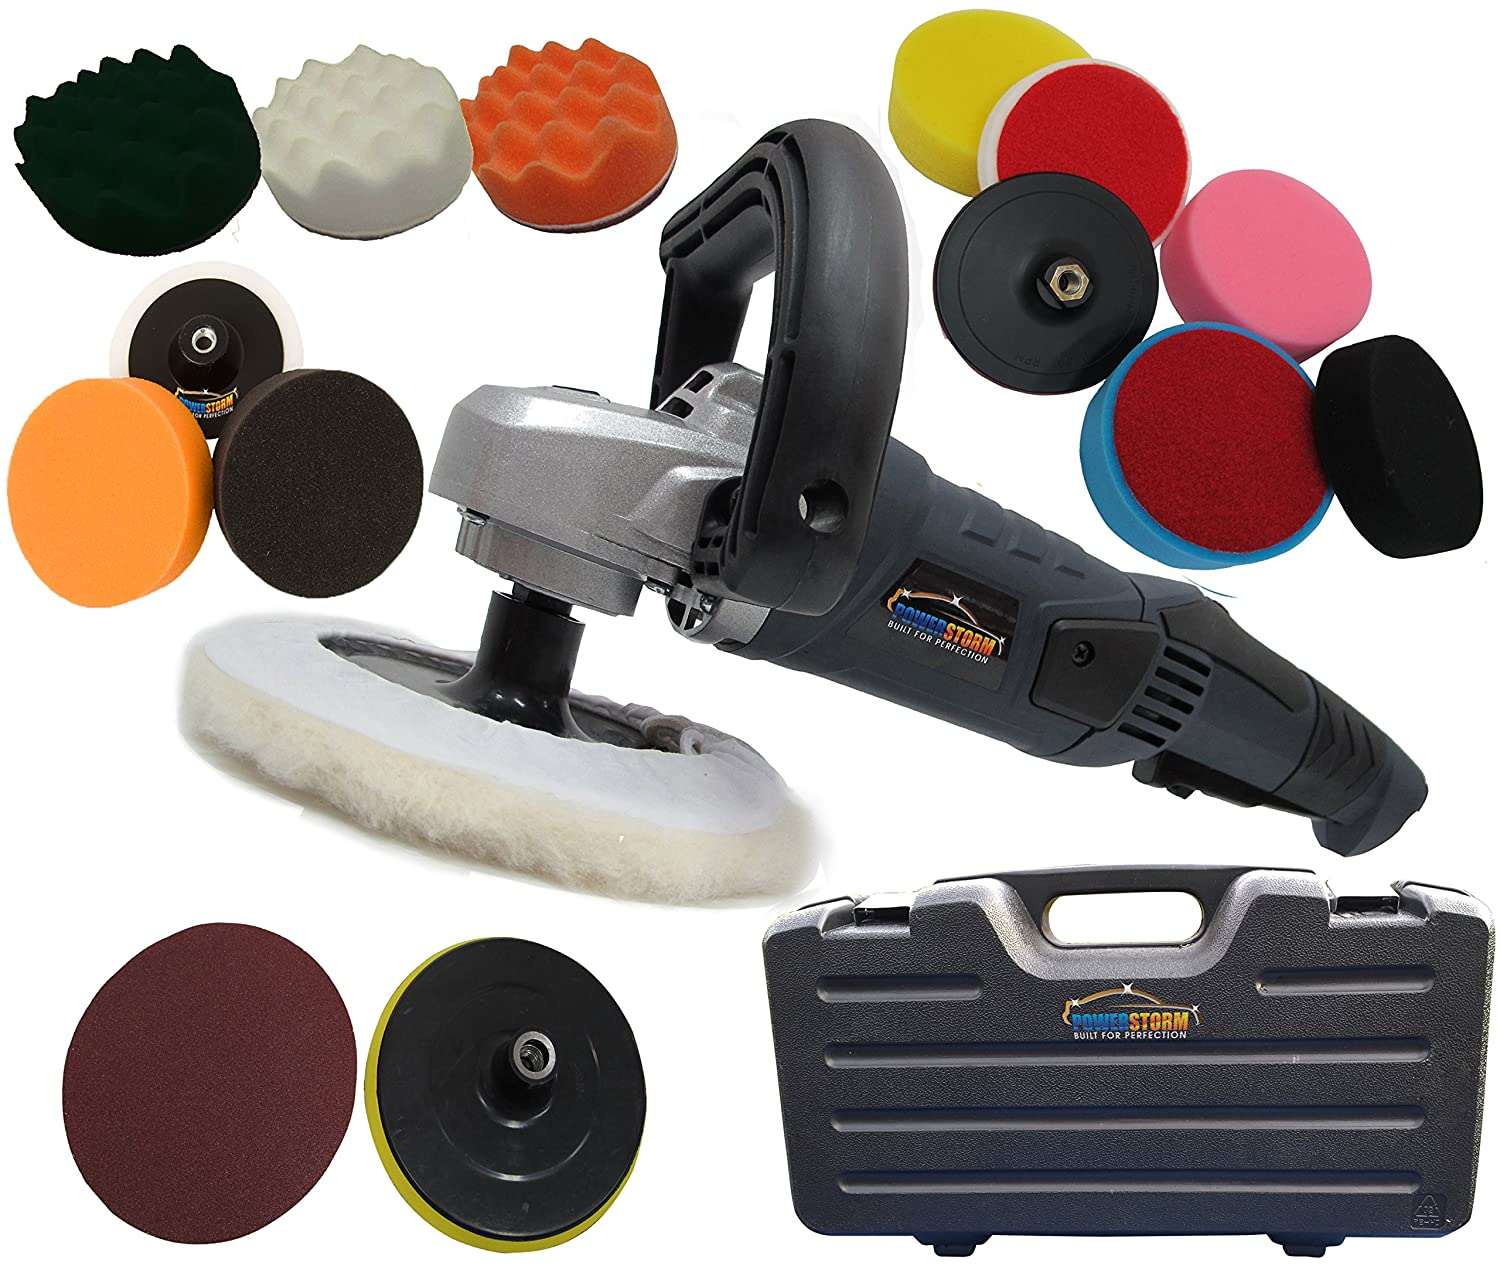 PowerStorm® Car Polisher Sander Buffer with Carry Case Plus 15 Car Polisher Heads DELUXE PLATINUM Pack Platinum Deluxe Pack